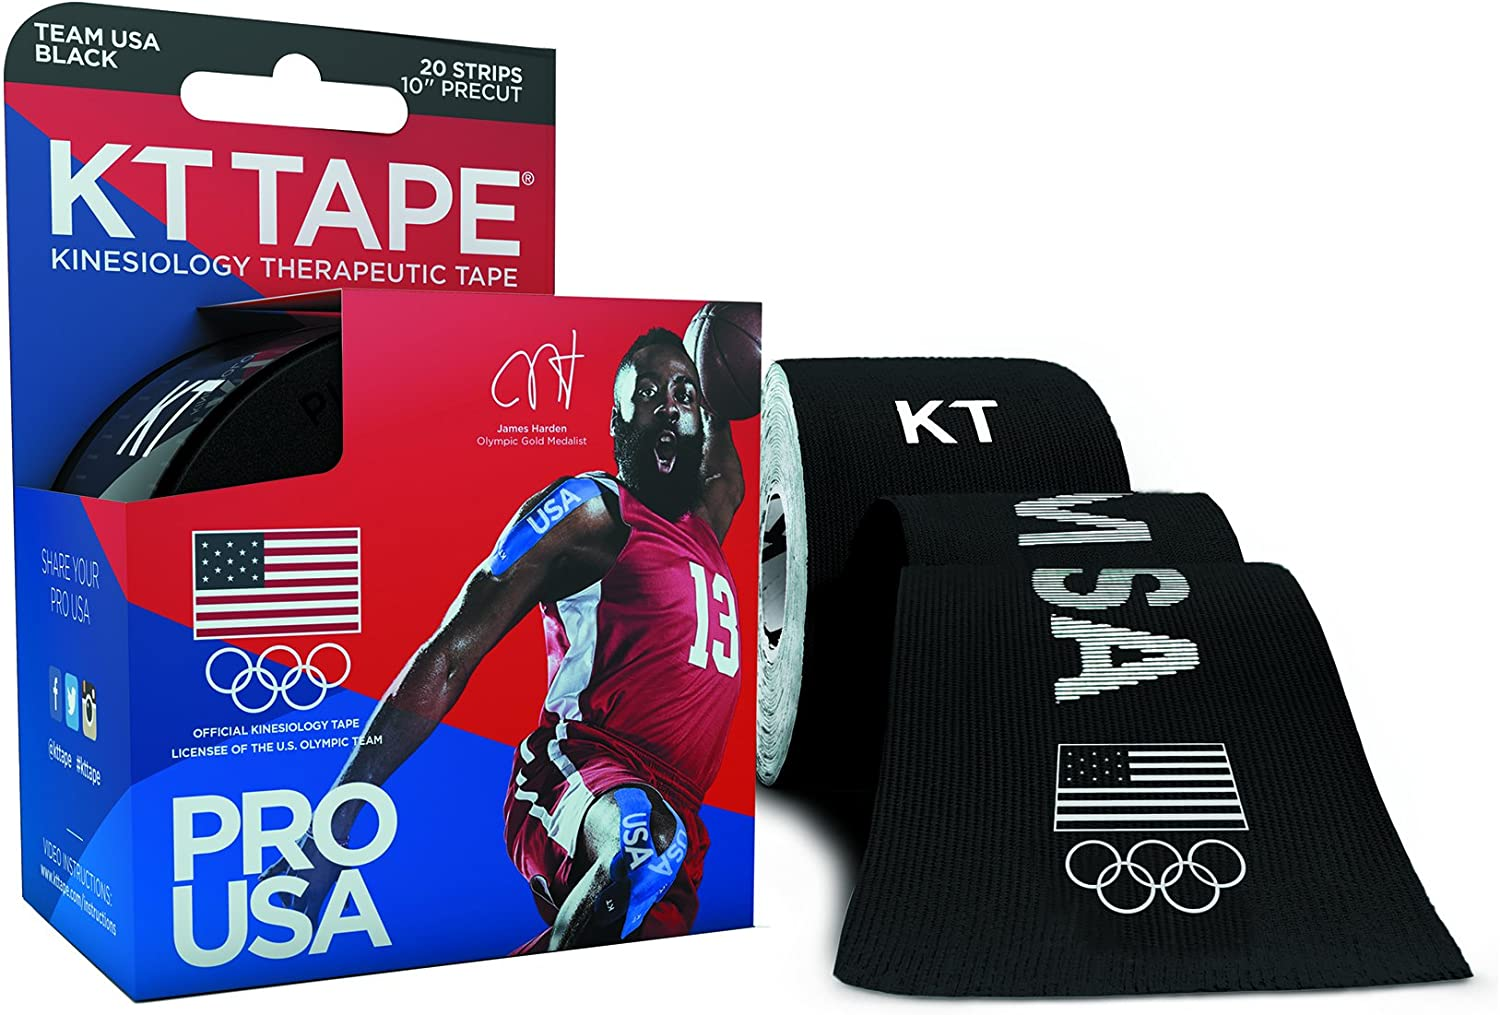 KT TAPE PRO Synthetic Kinesiology Resistant free Water Sports depot a Tape